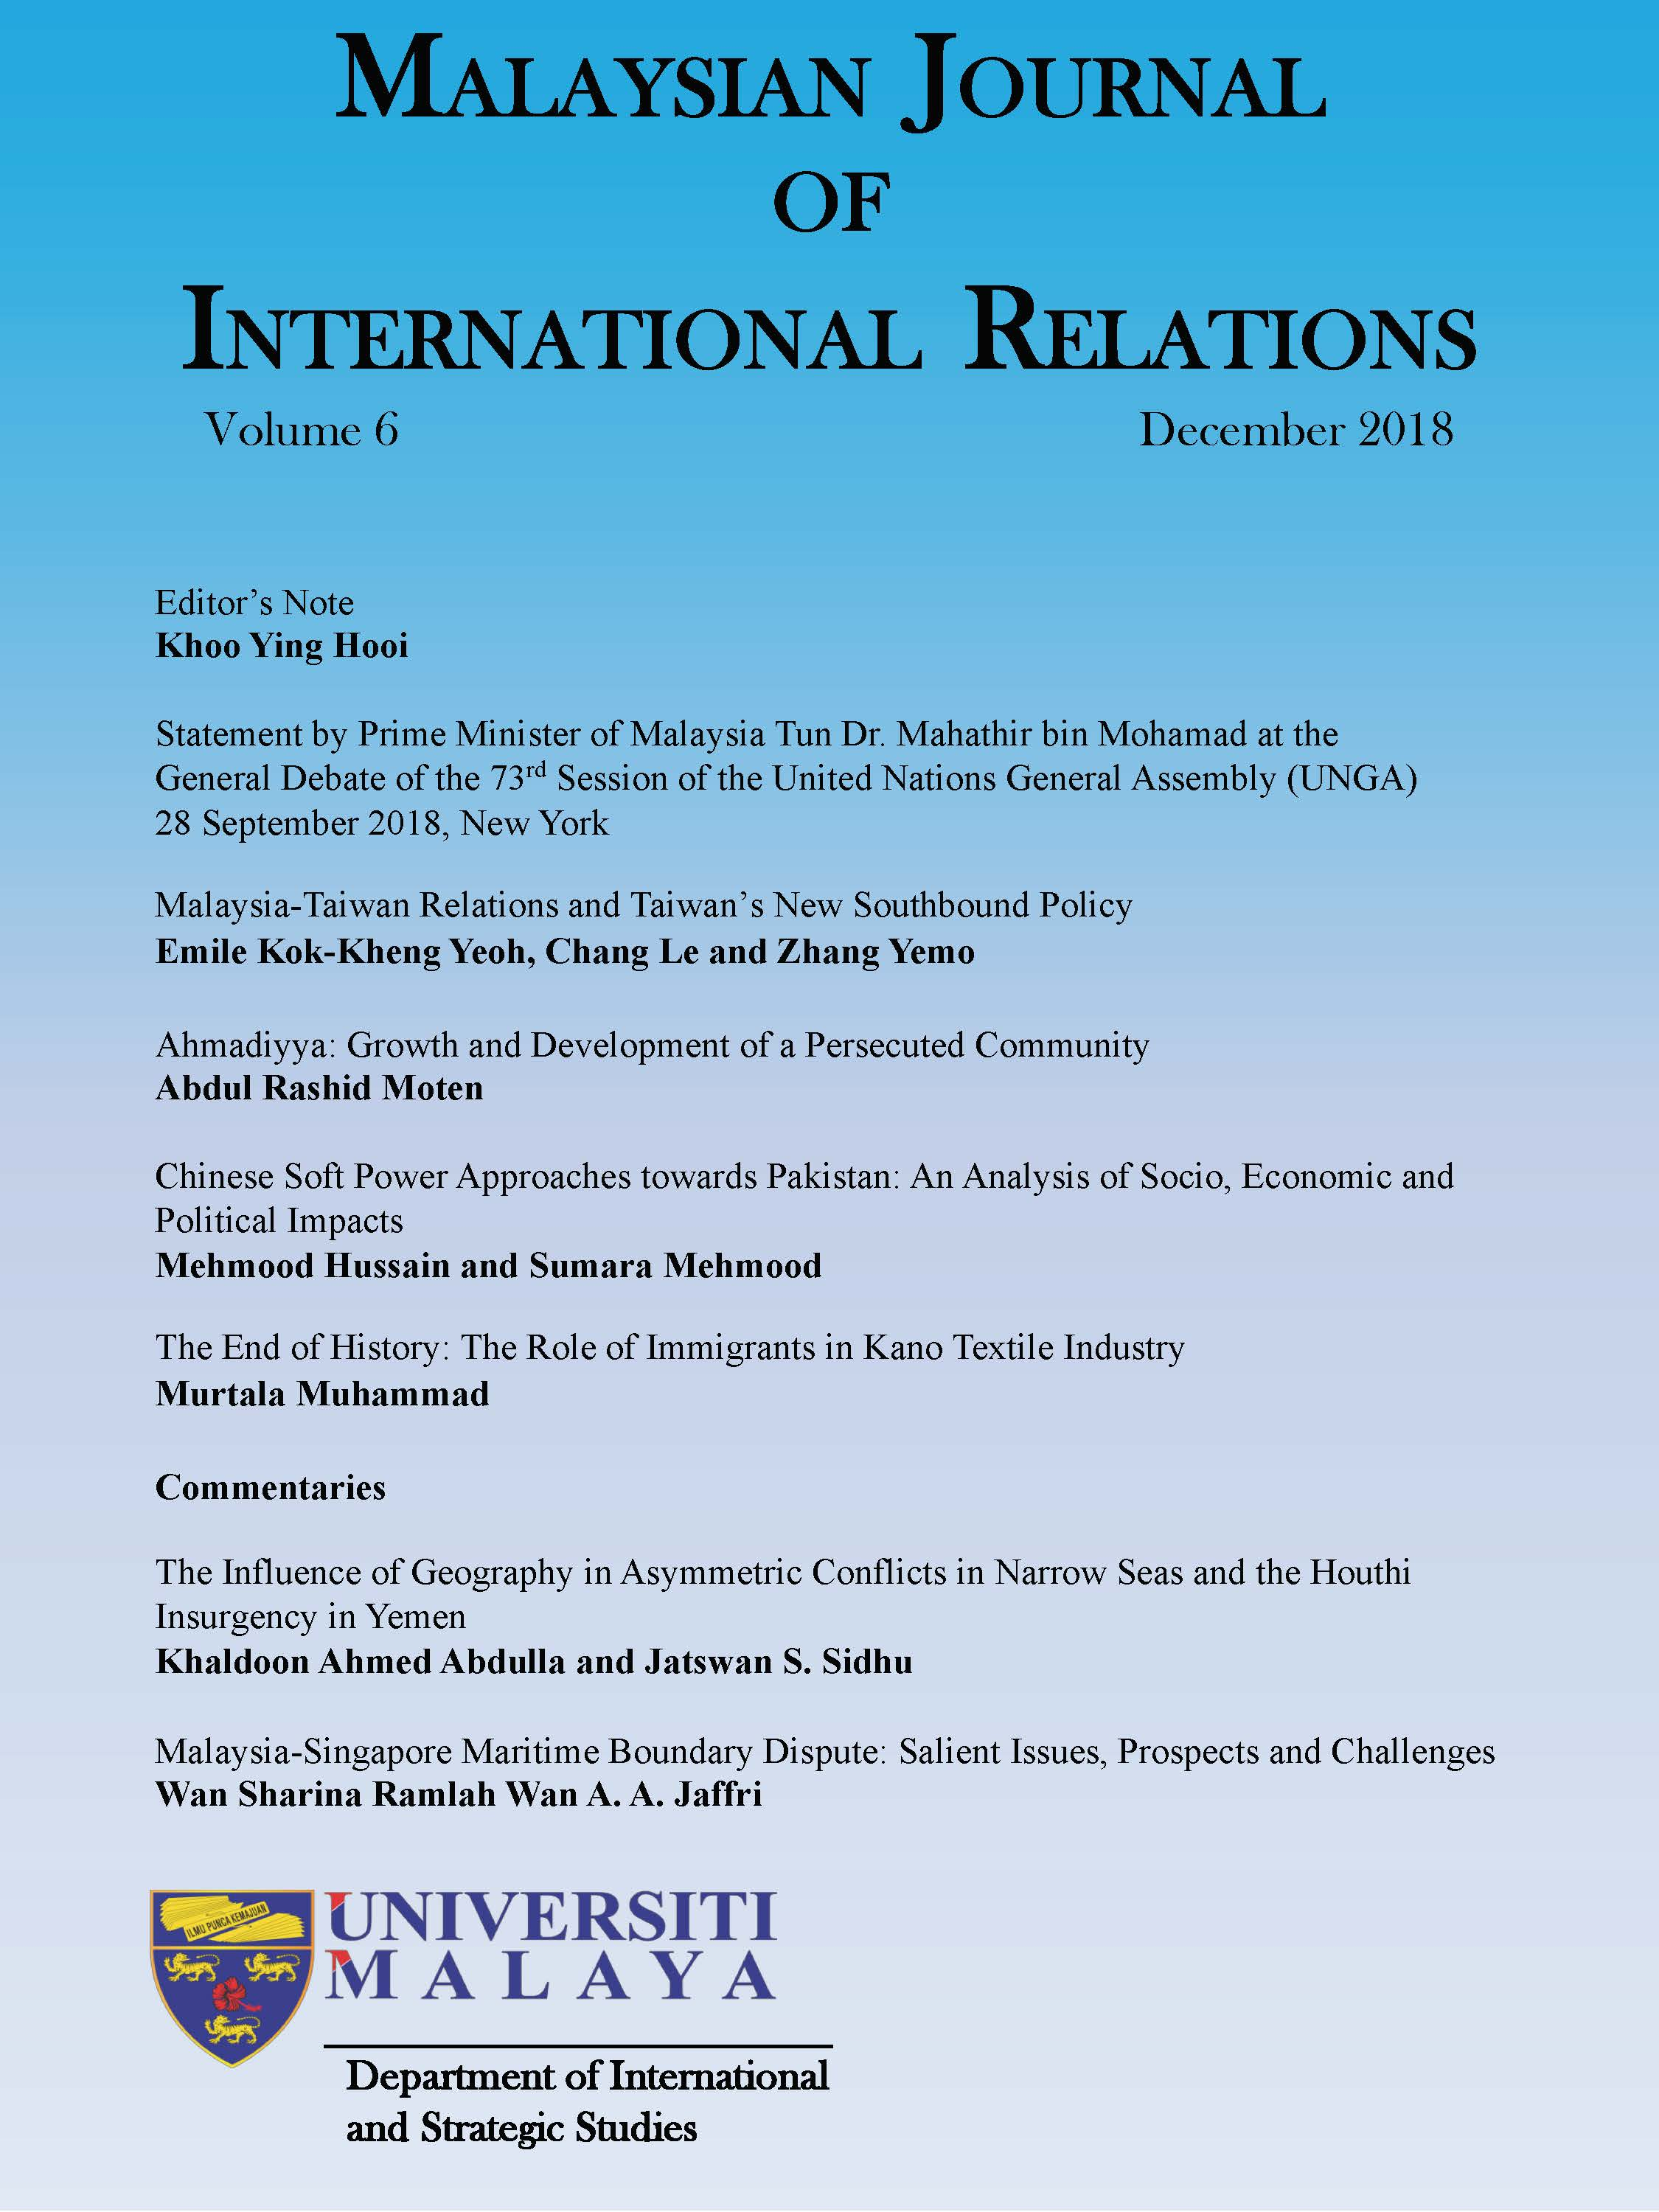 MJIR | Malaysian Journal of International Relations